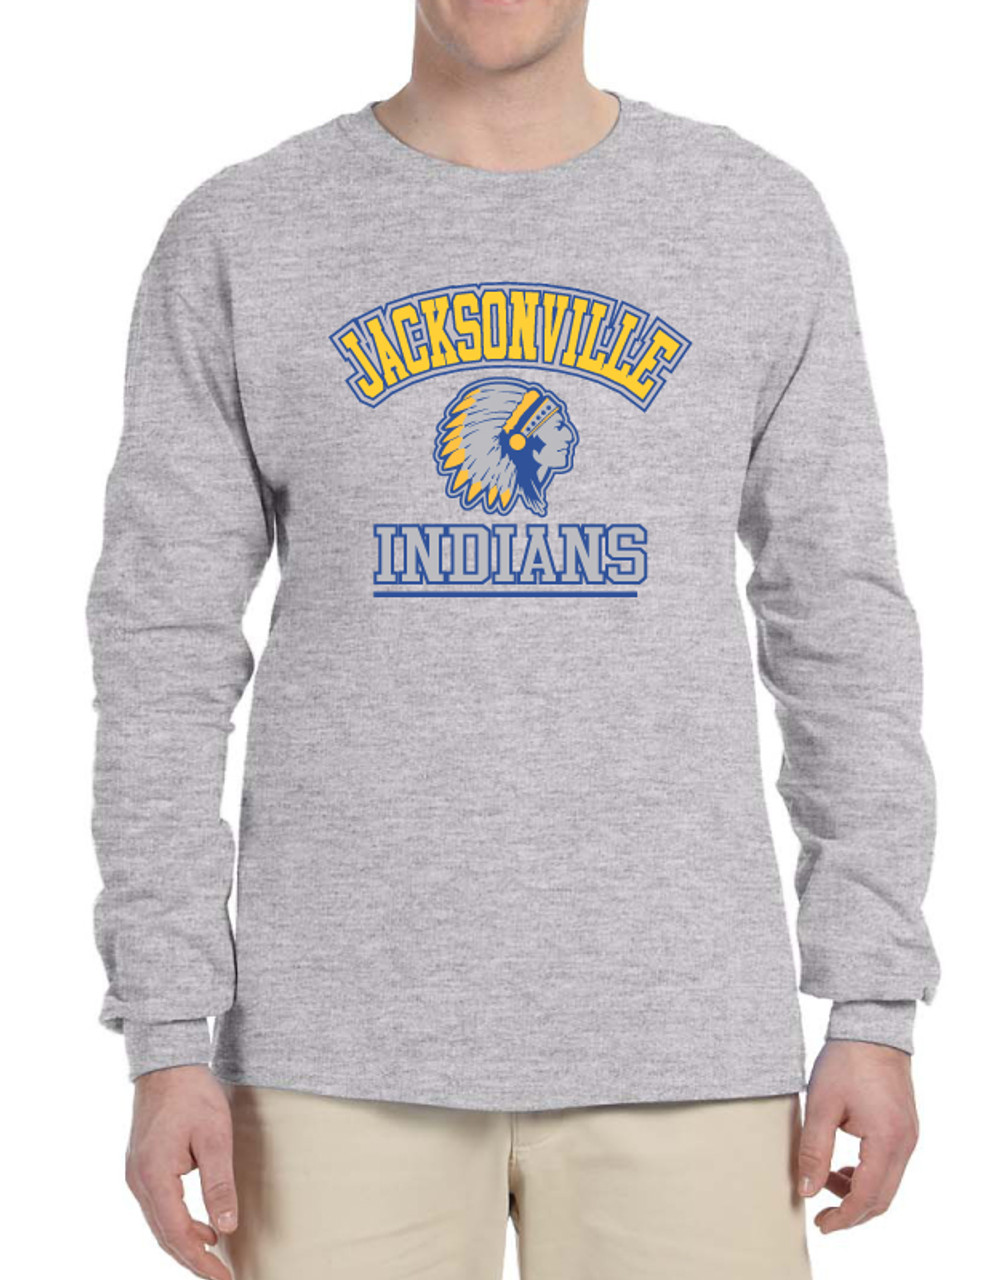 Long Sleeve Jacksonville T-shirt Adult & Youth Sizes